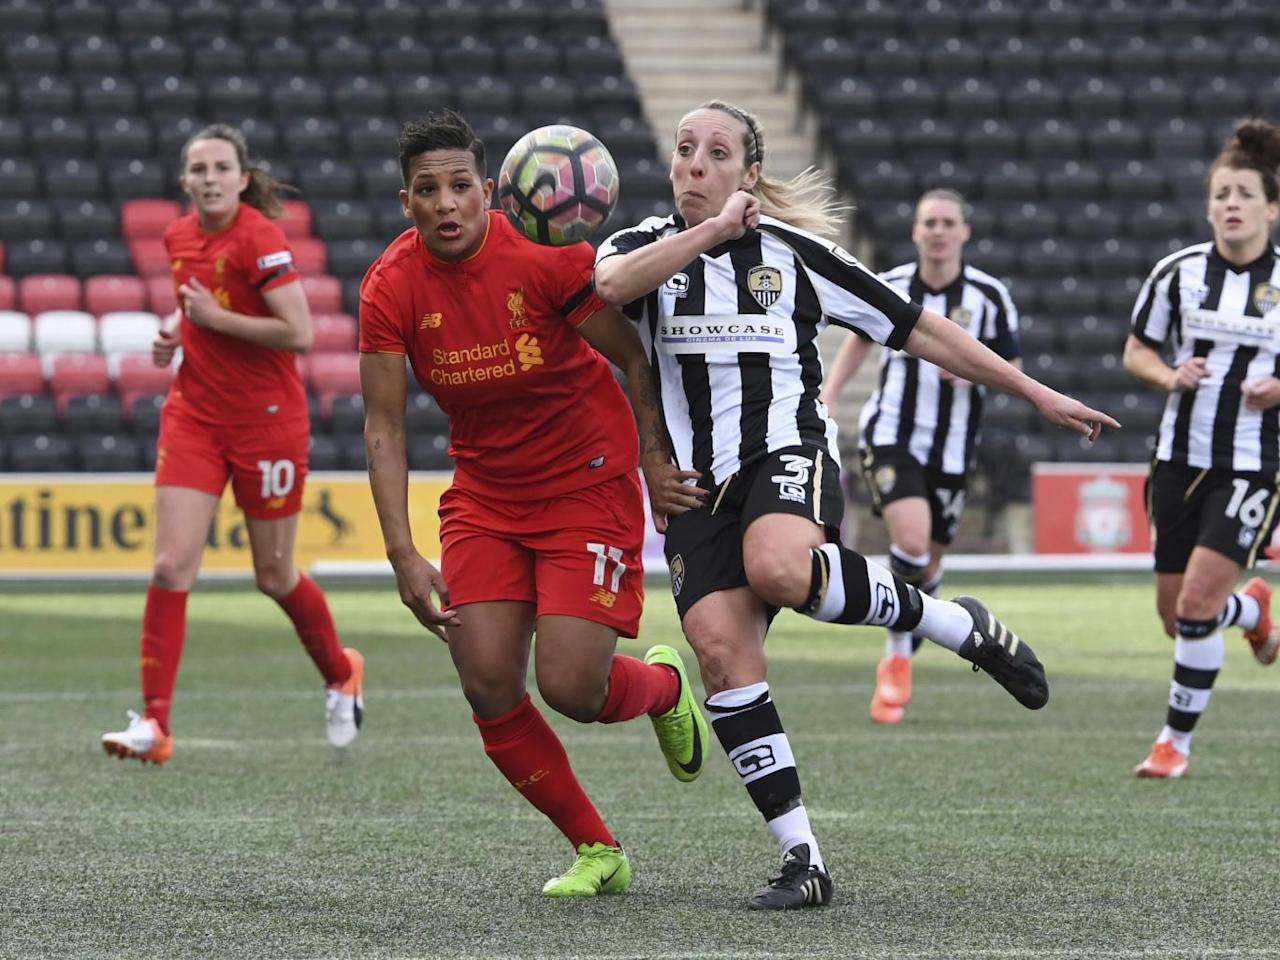 Notts County Ladies fold two days before the start of the Spring Series of the Womens Soccer League